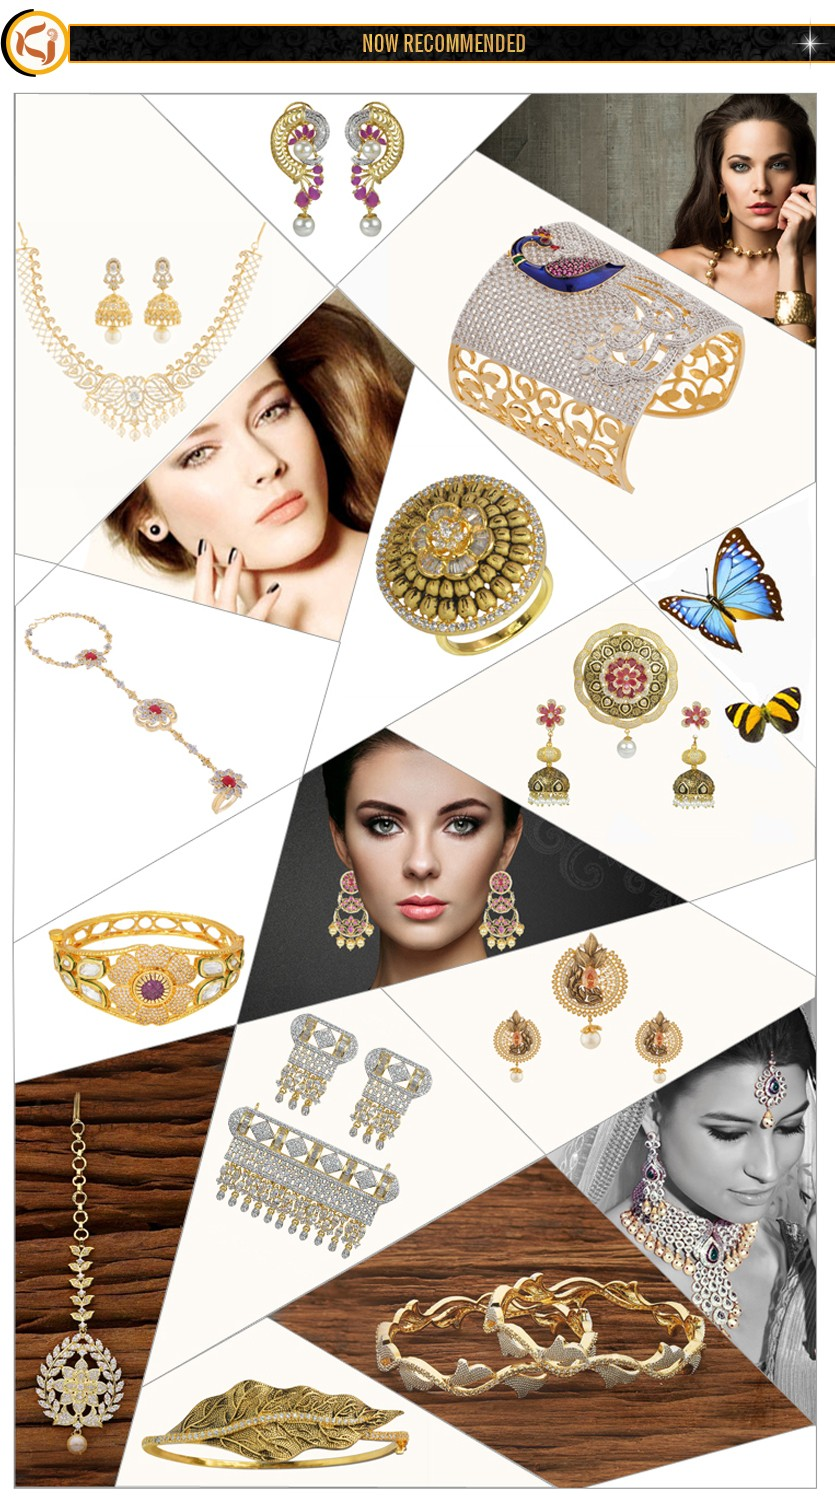 CZ Rings at wholesale prices in india with export quality shipping, wholesale artificial jewellery - 55094